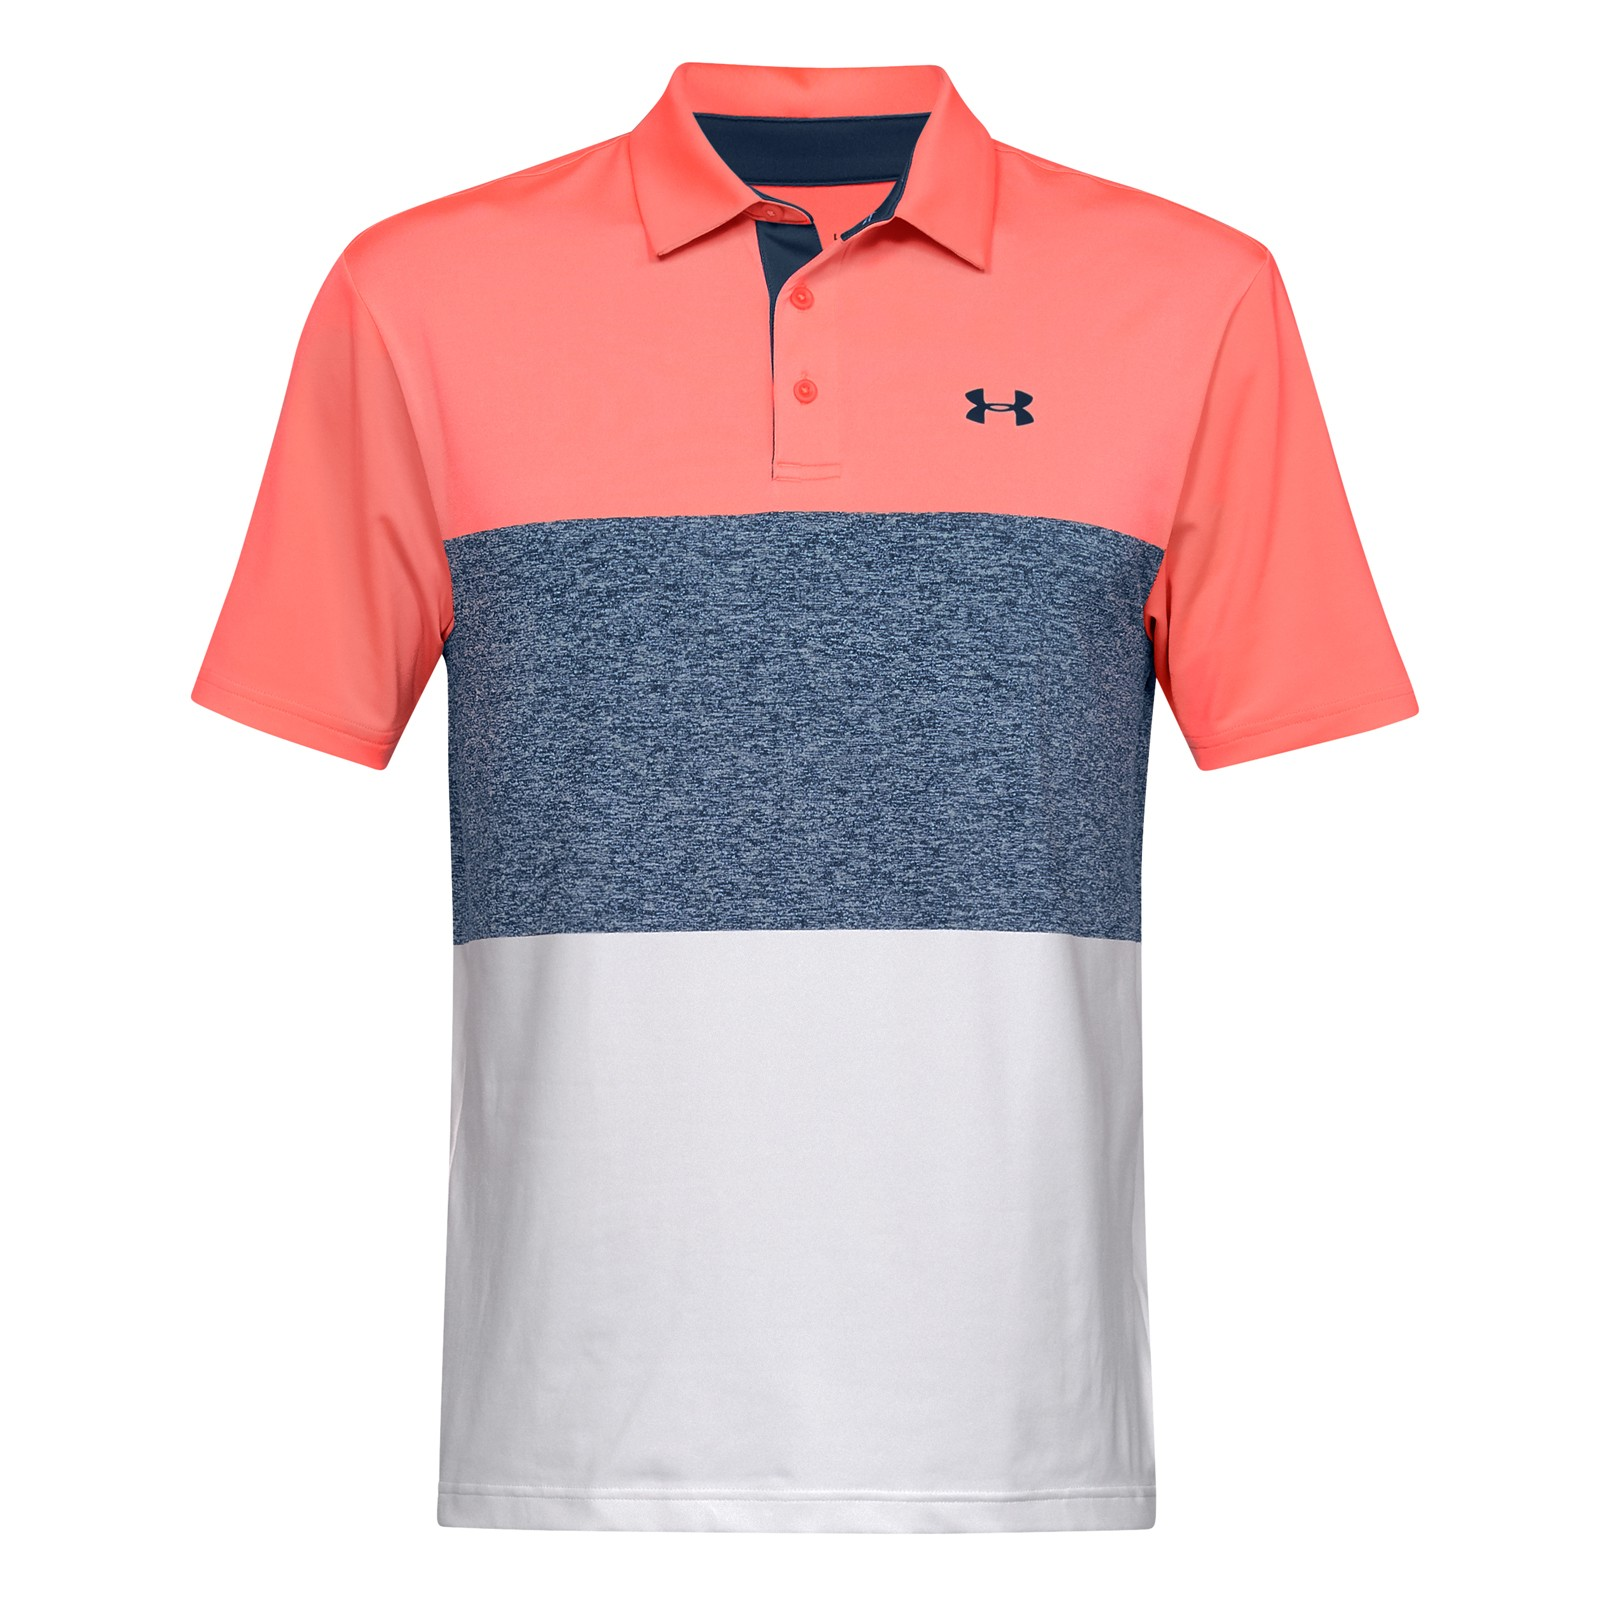 Under Armour Playoff 2.0 Polo - Heritage